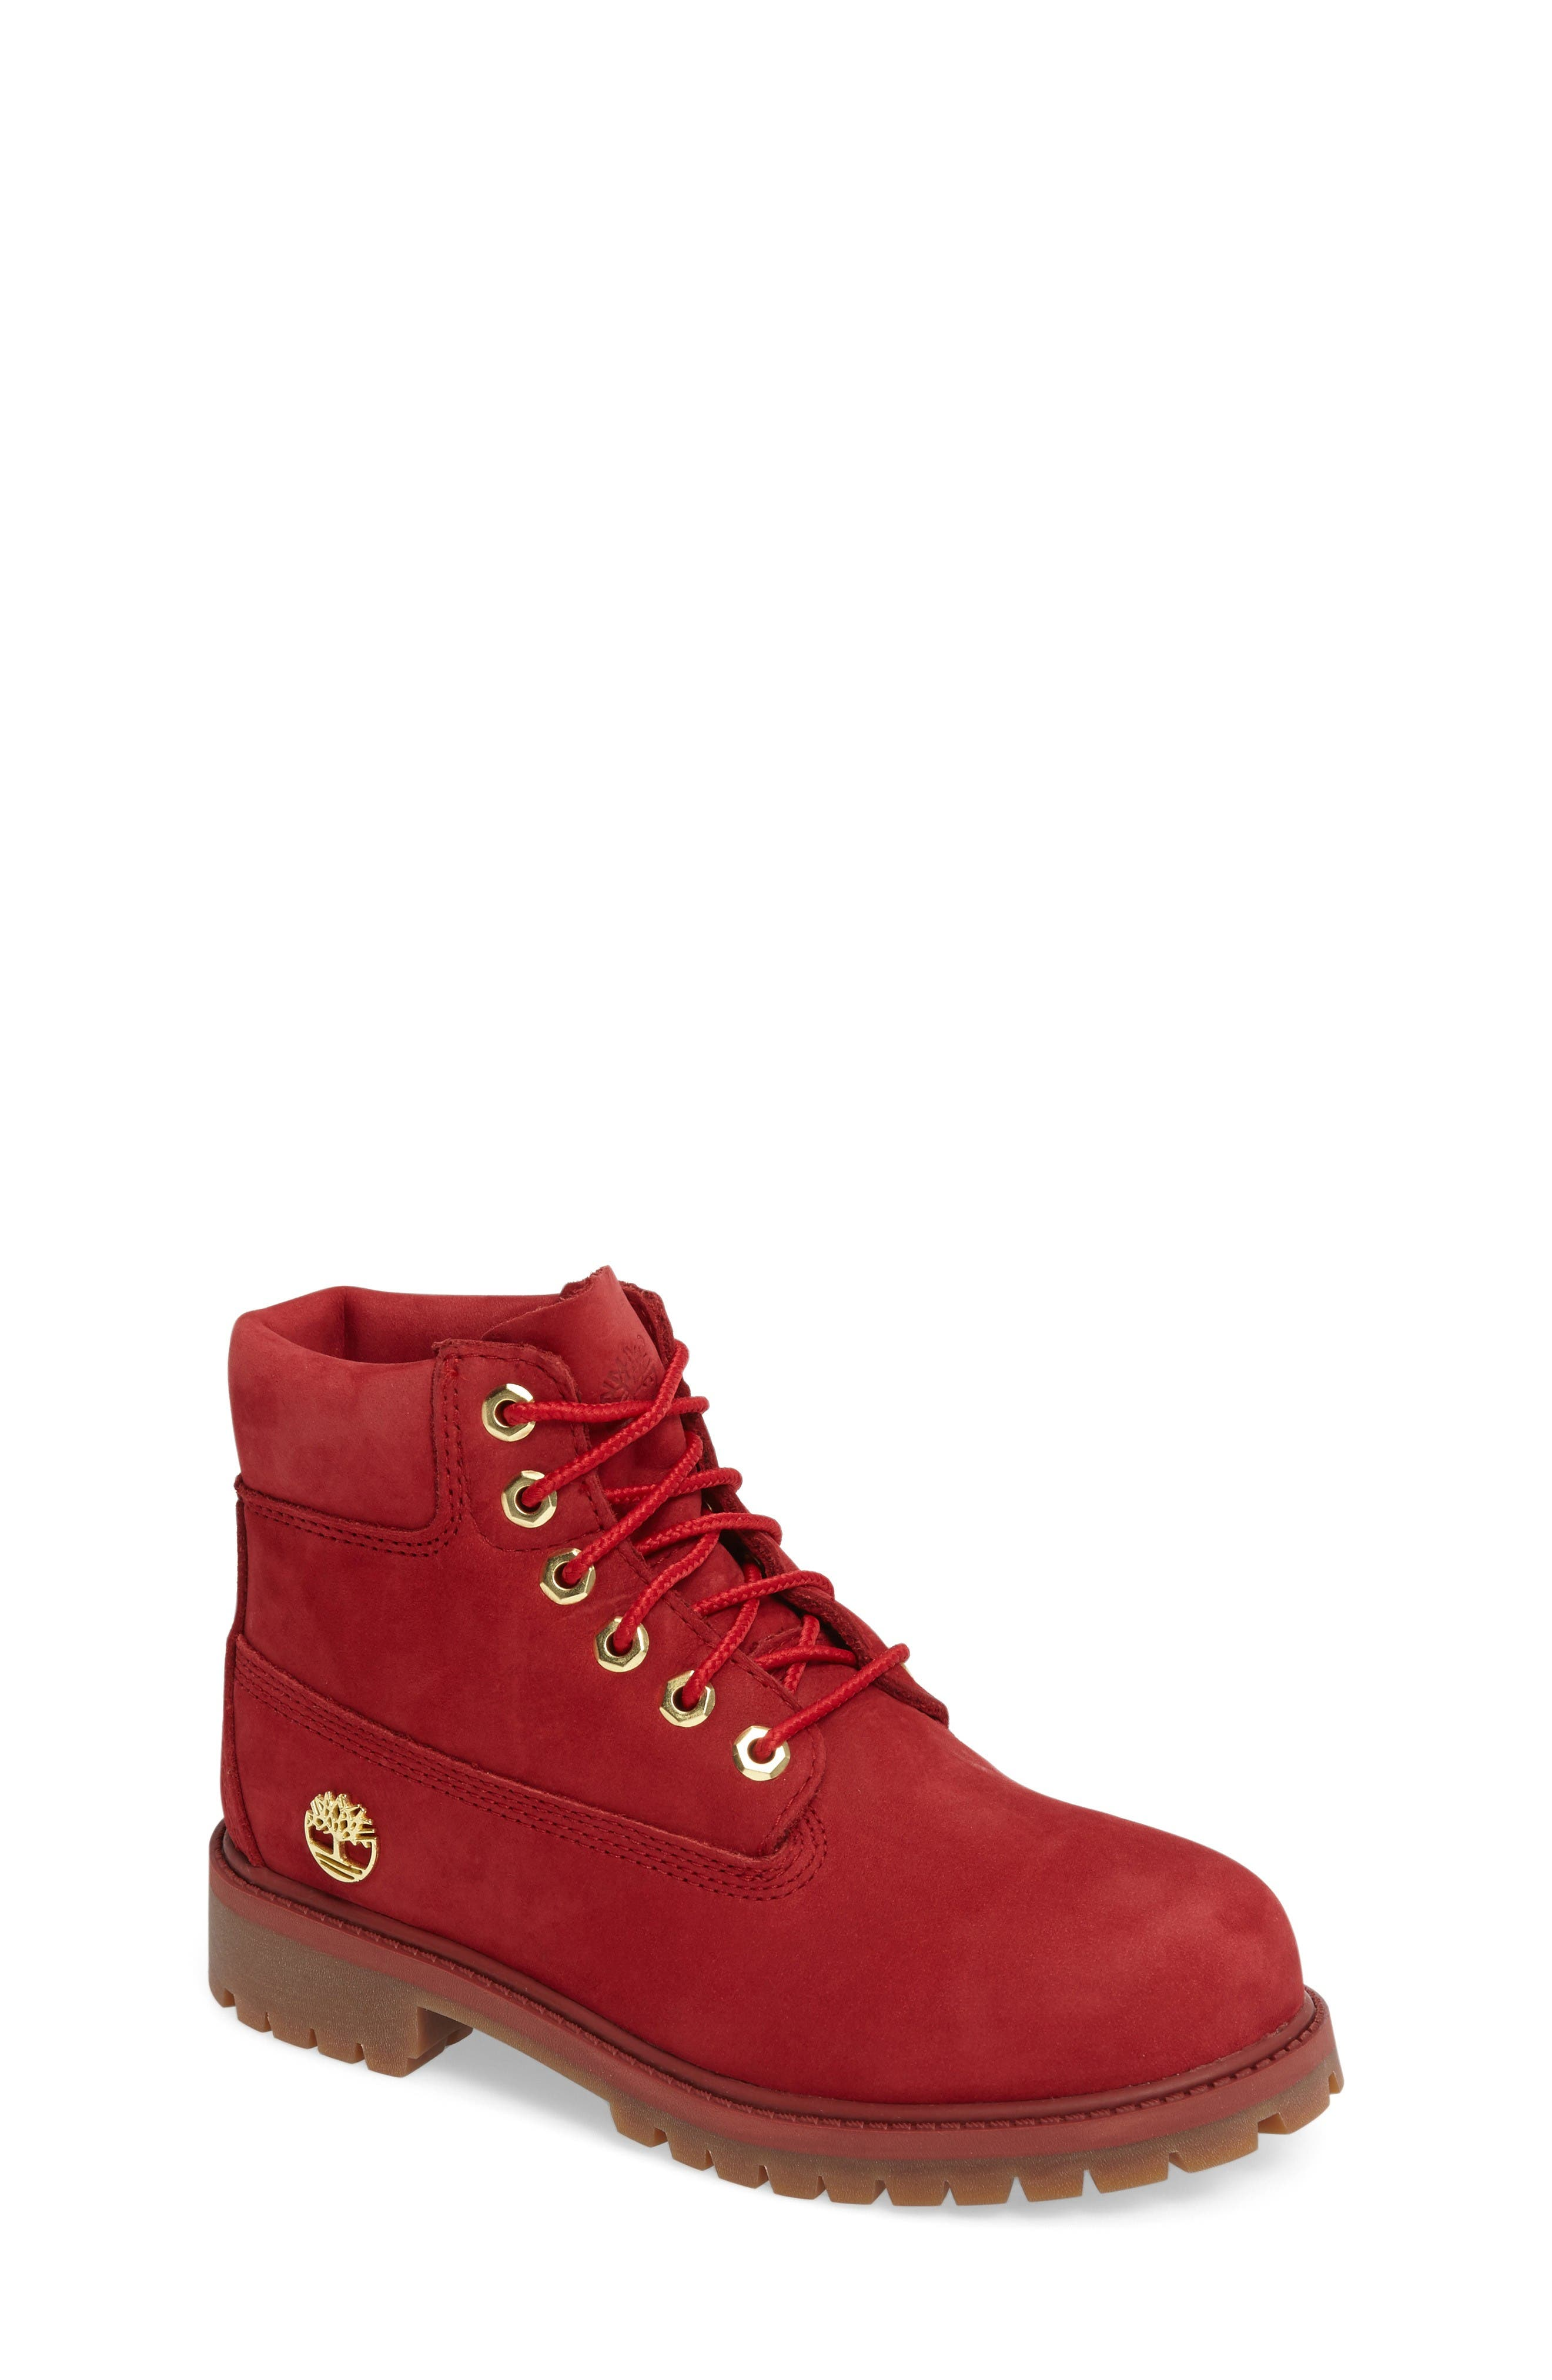 Main Image - Timberland 40th Anniversary Ruby Red Waterproof Boot (Walker, Toddler, Little Kid & Big Kid)